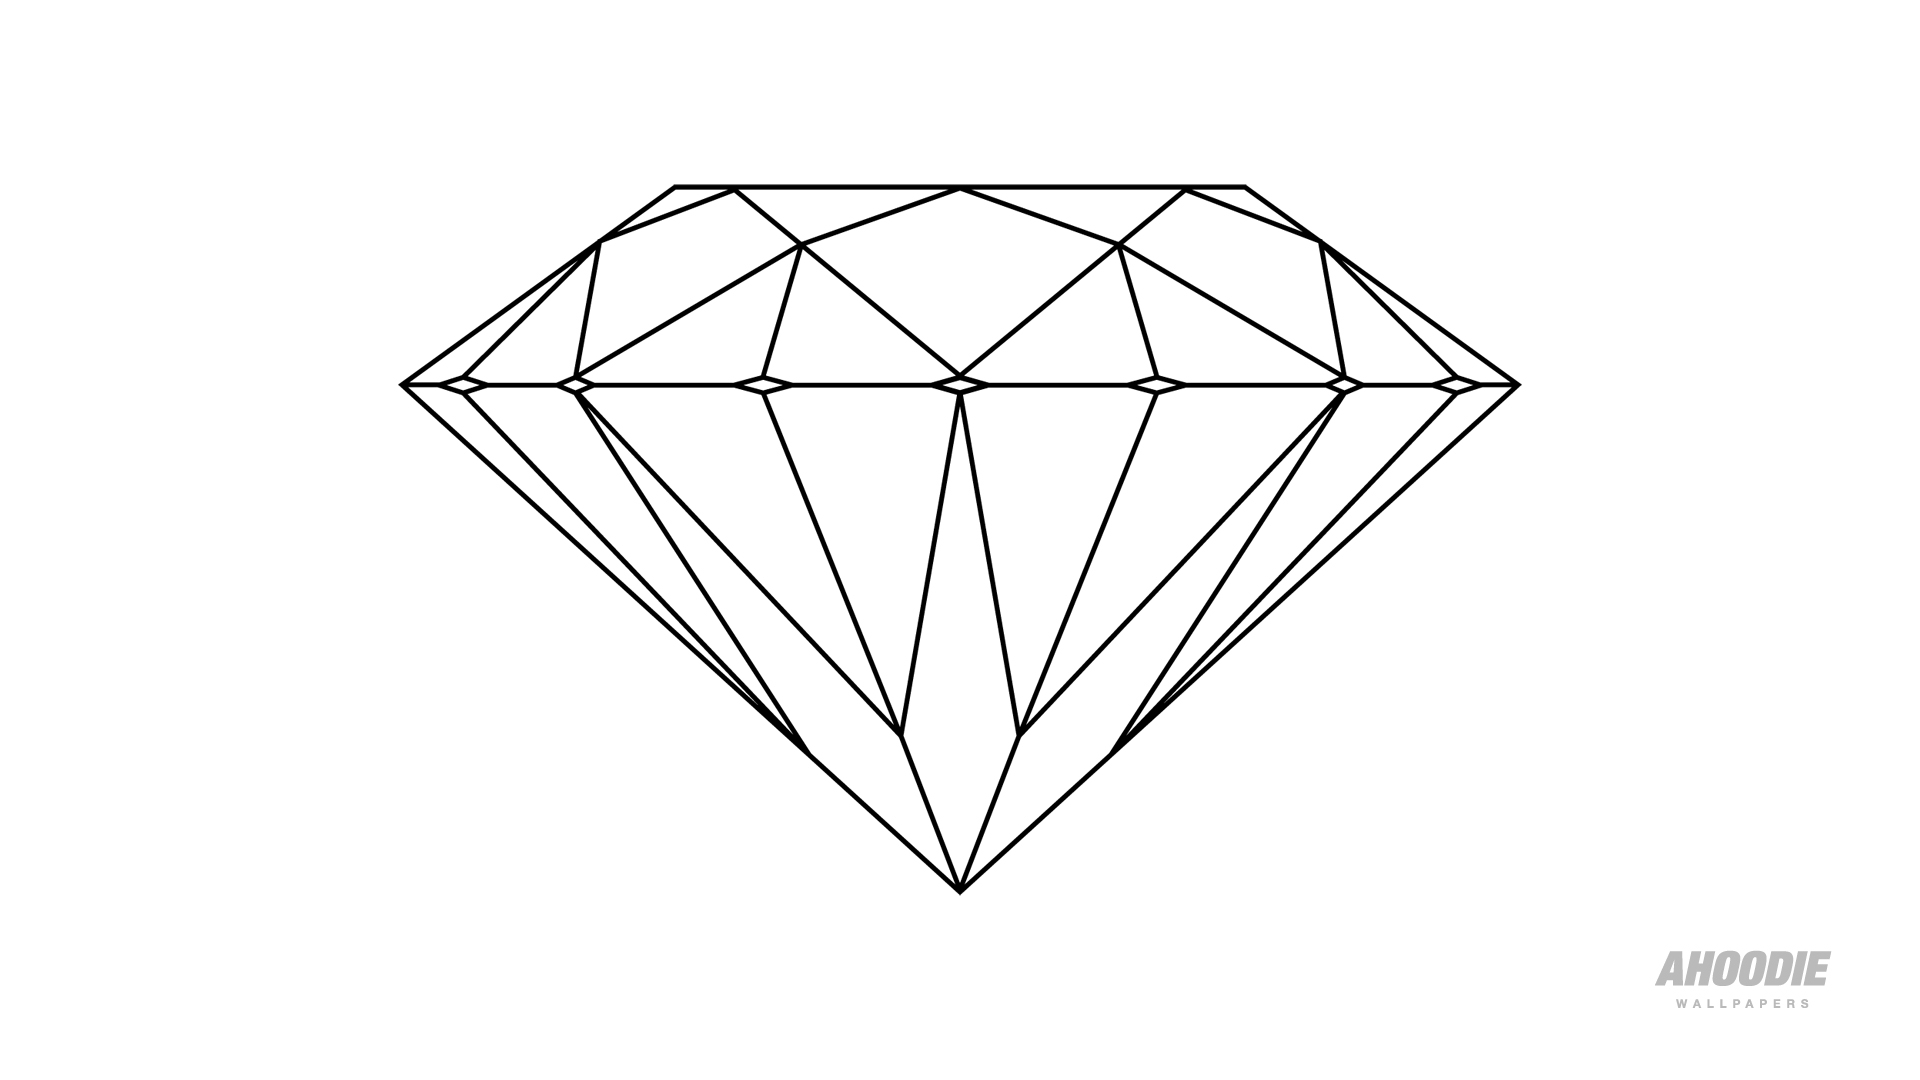 diamond supply co logo vector - photo #12